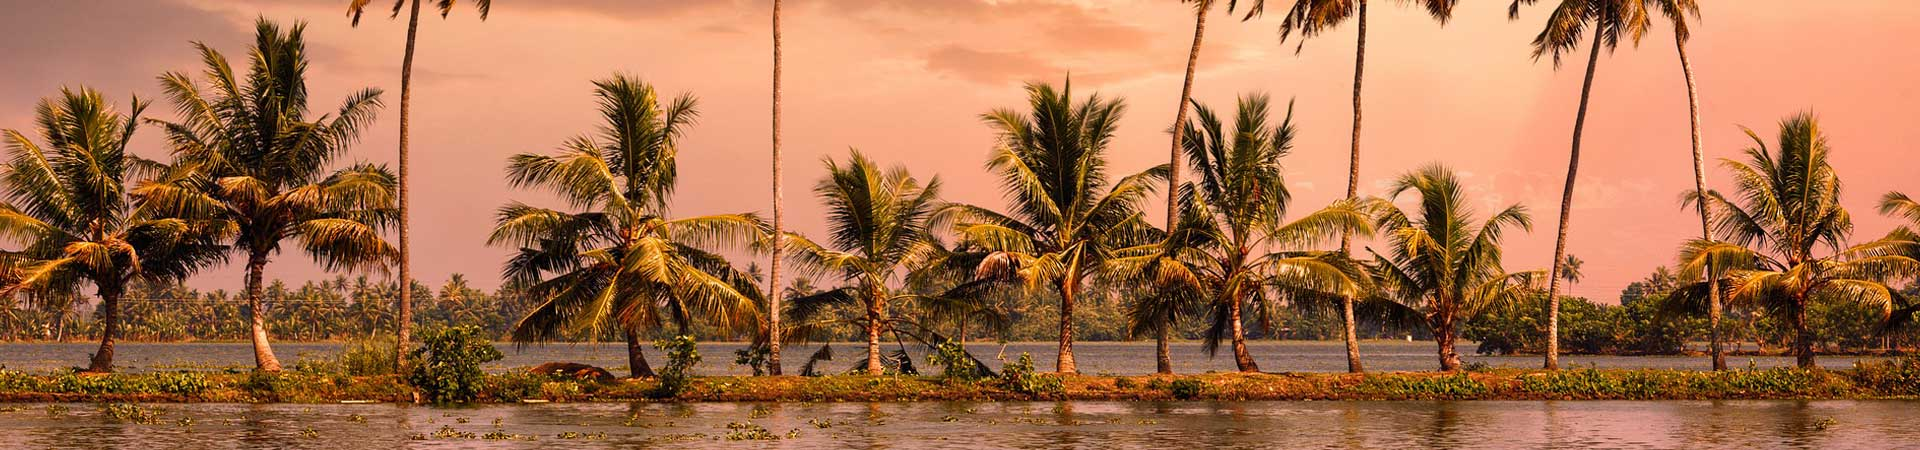 5D4N Kerala Backwaters